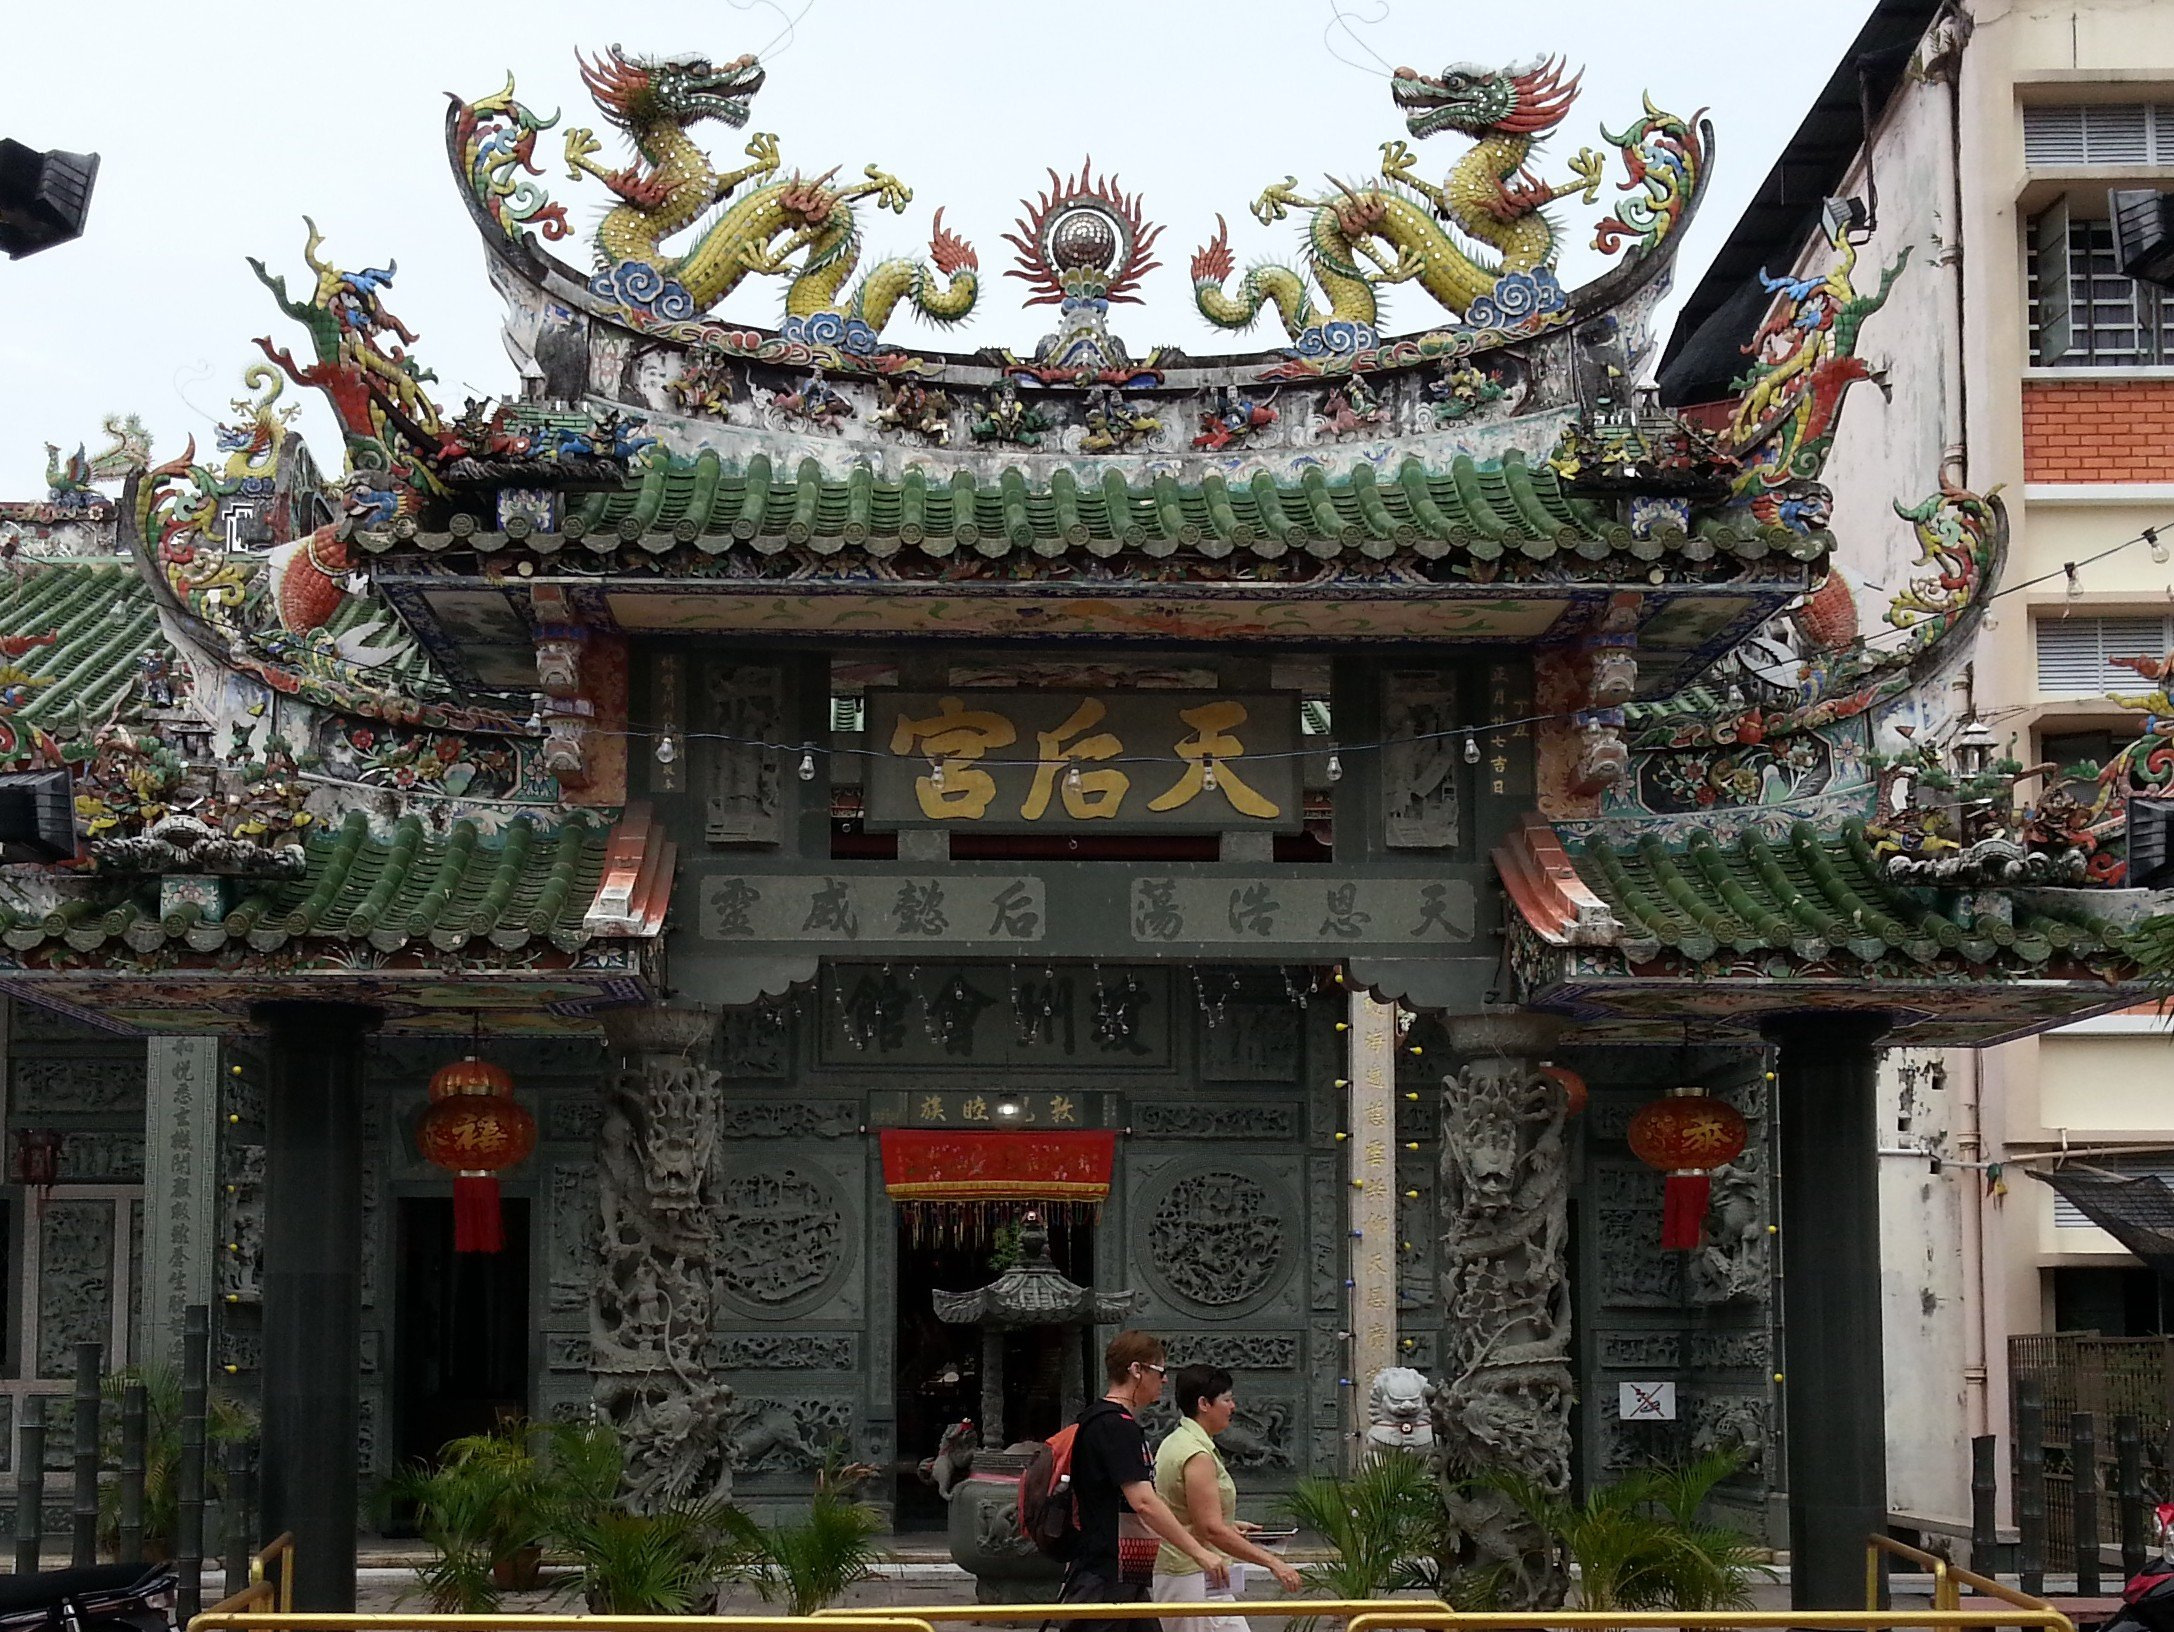 Hainan Temple in Penang